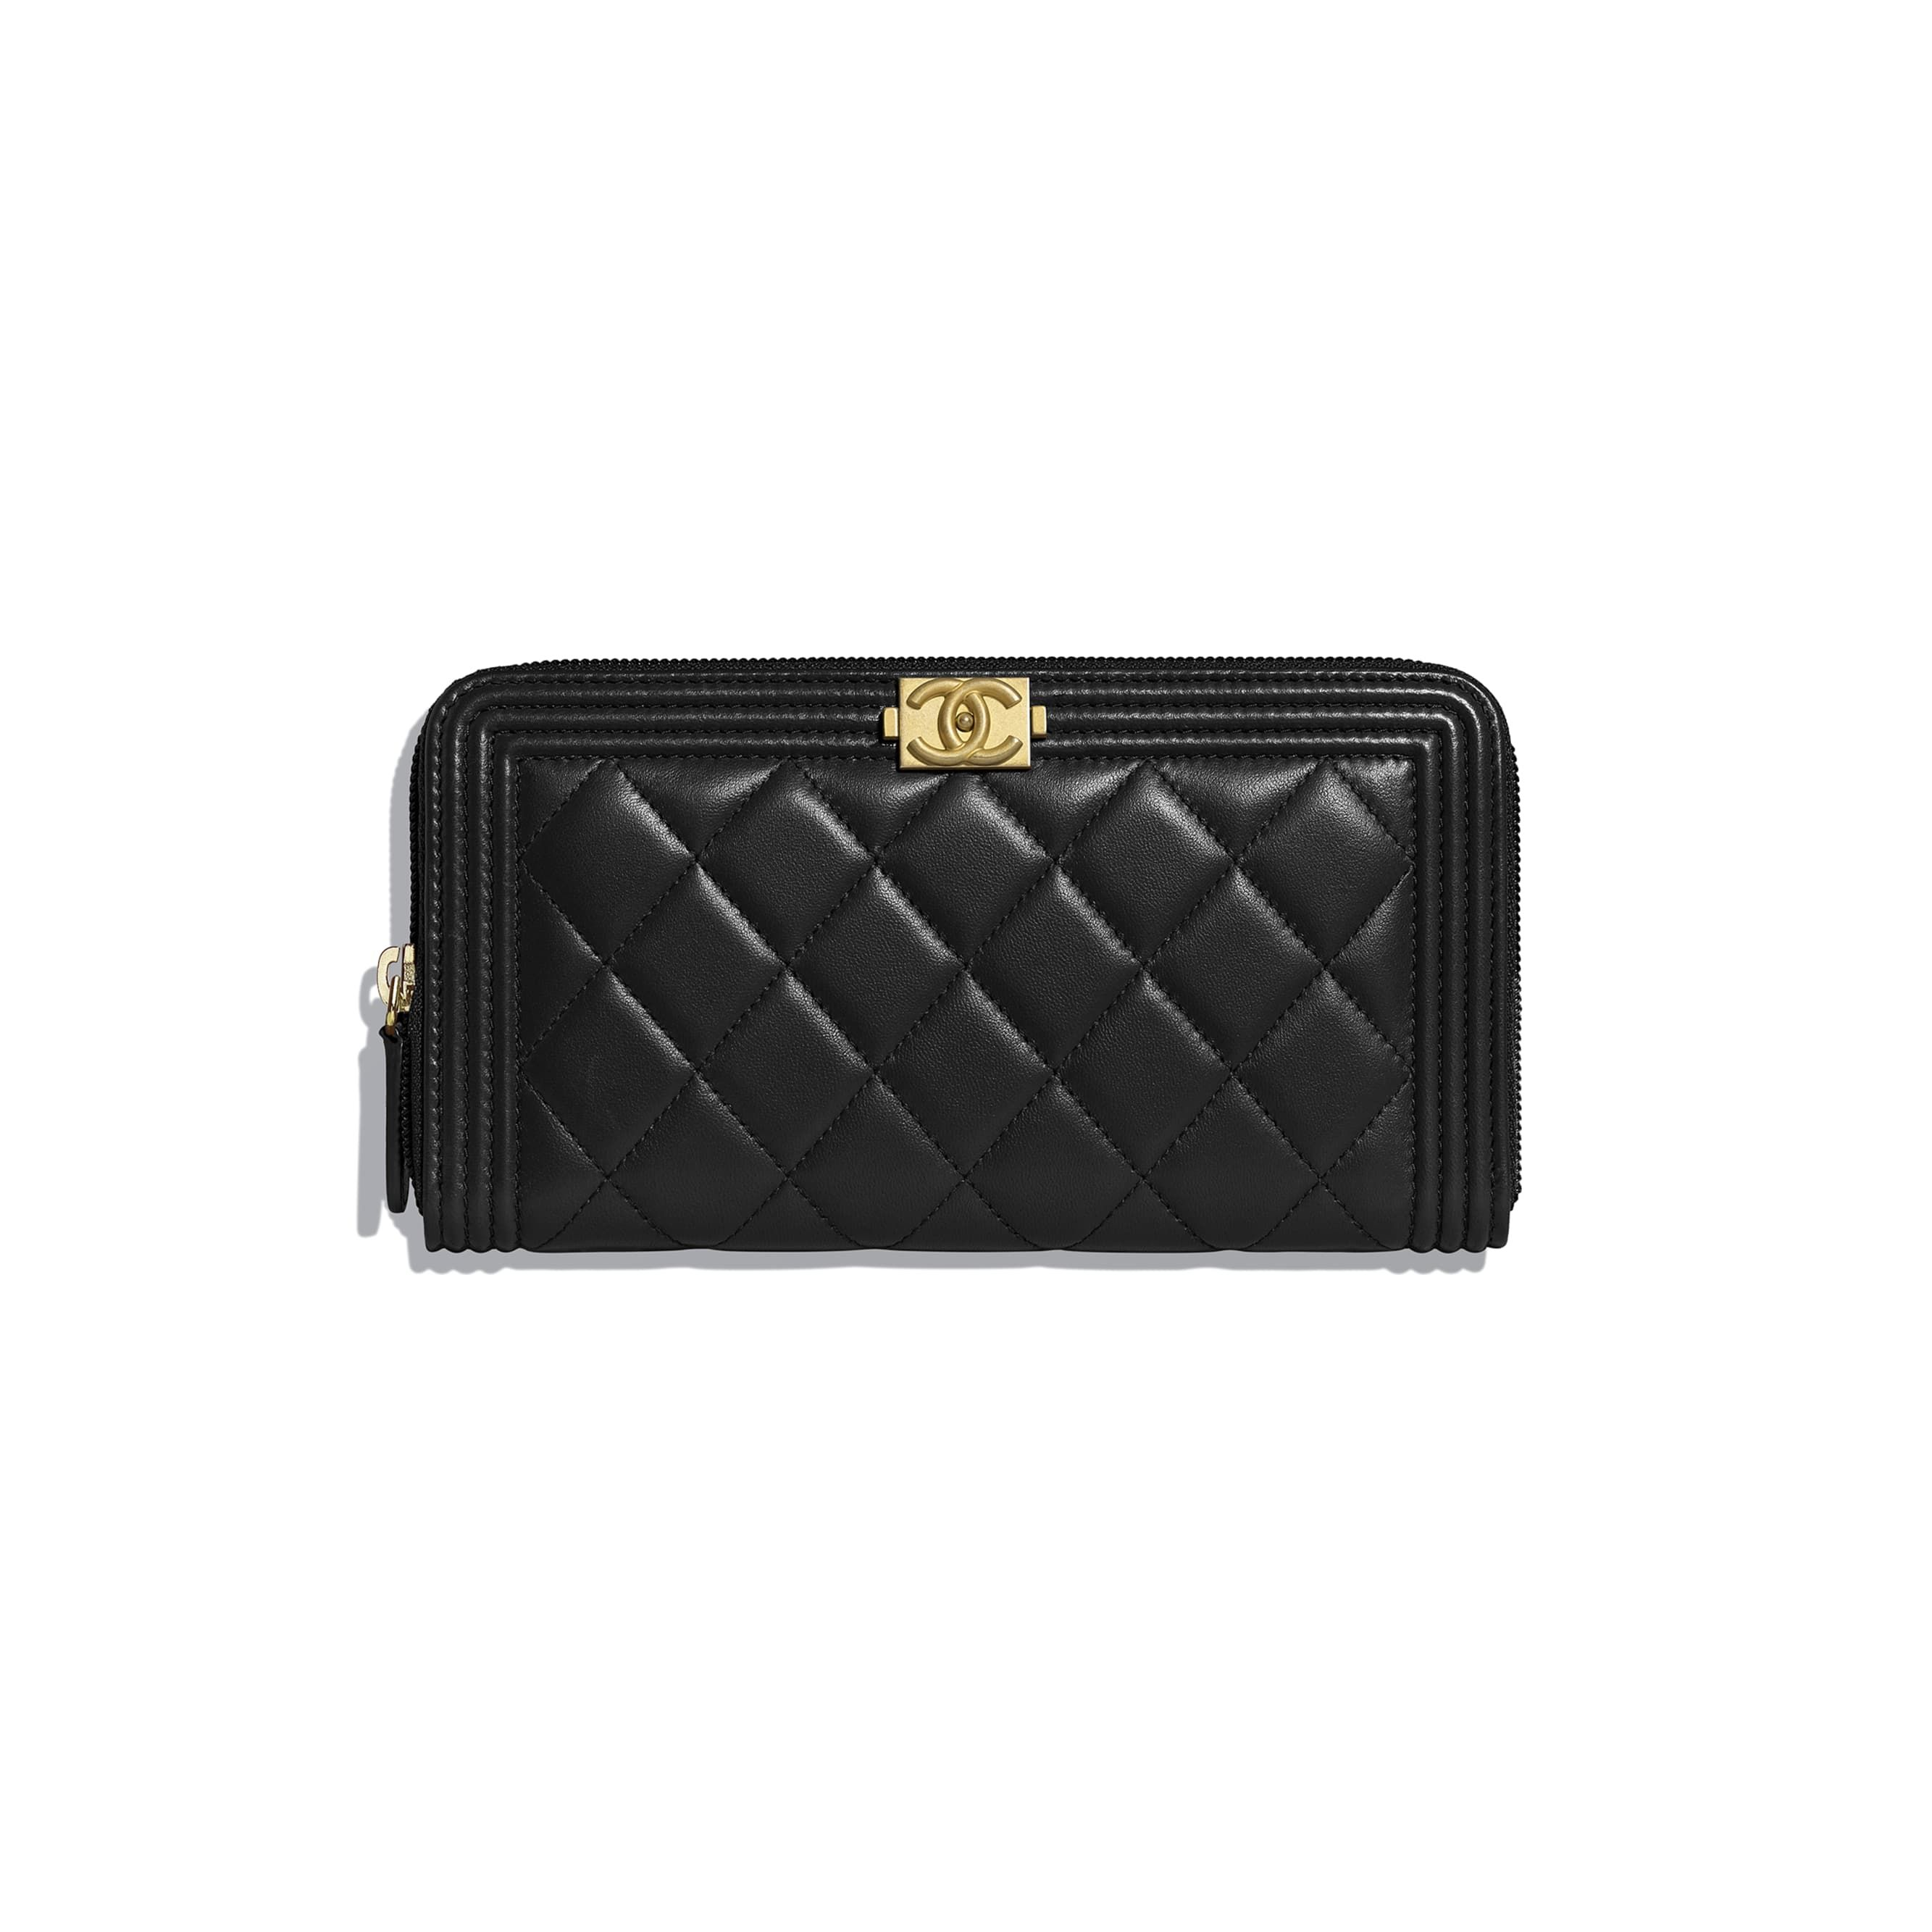 900cde520c Lambskin & Gold-Tone Metal Black BOY CHANEL Long Zipped Wallet ...